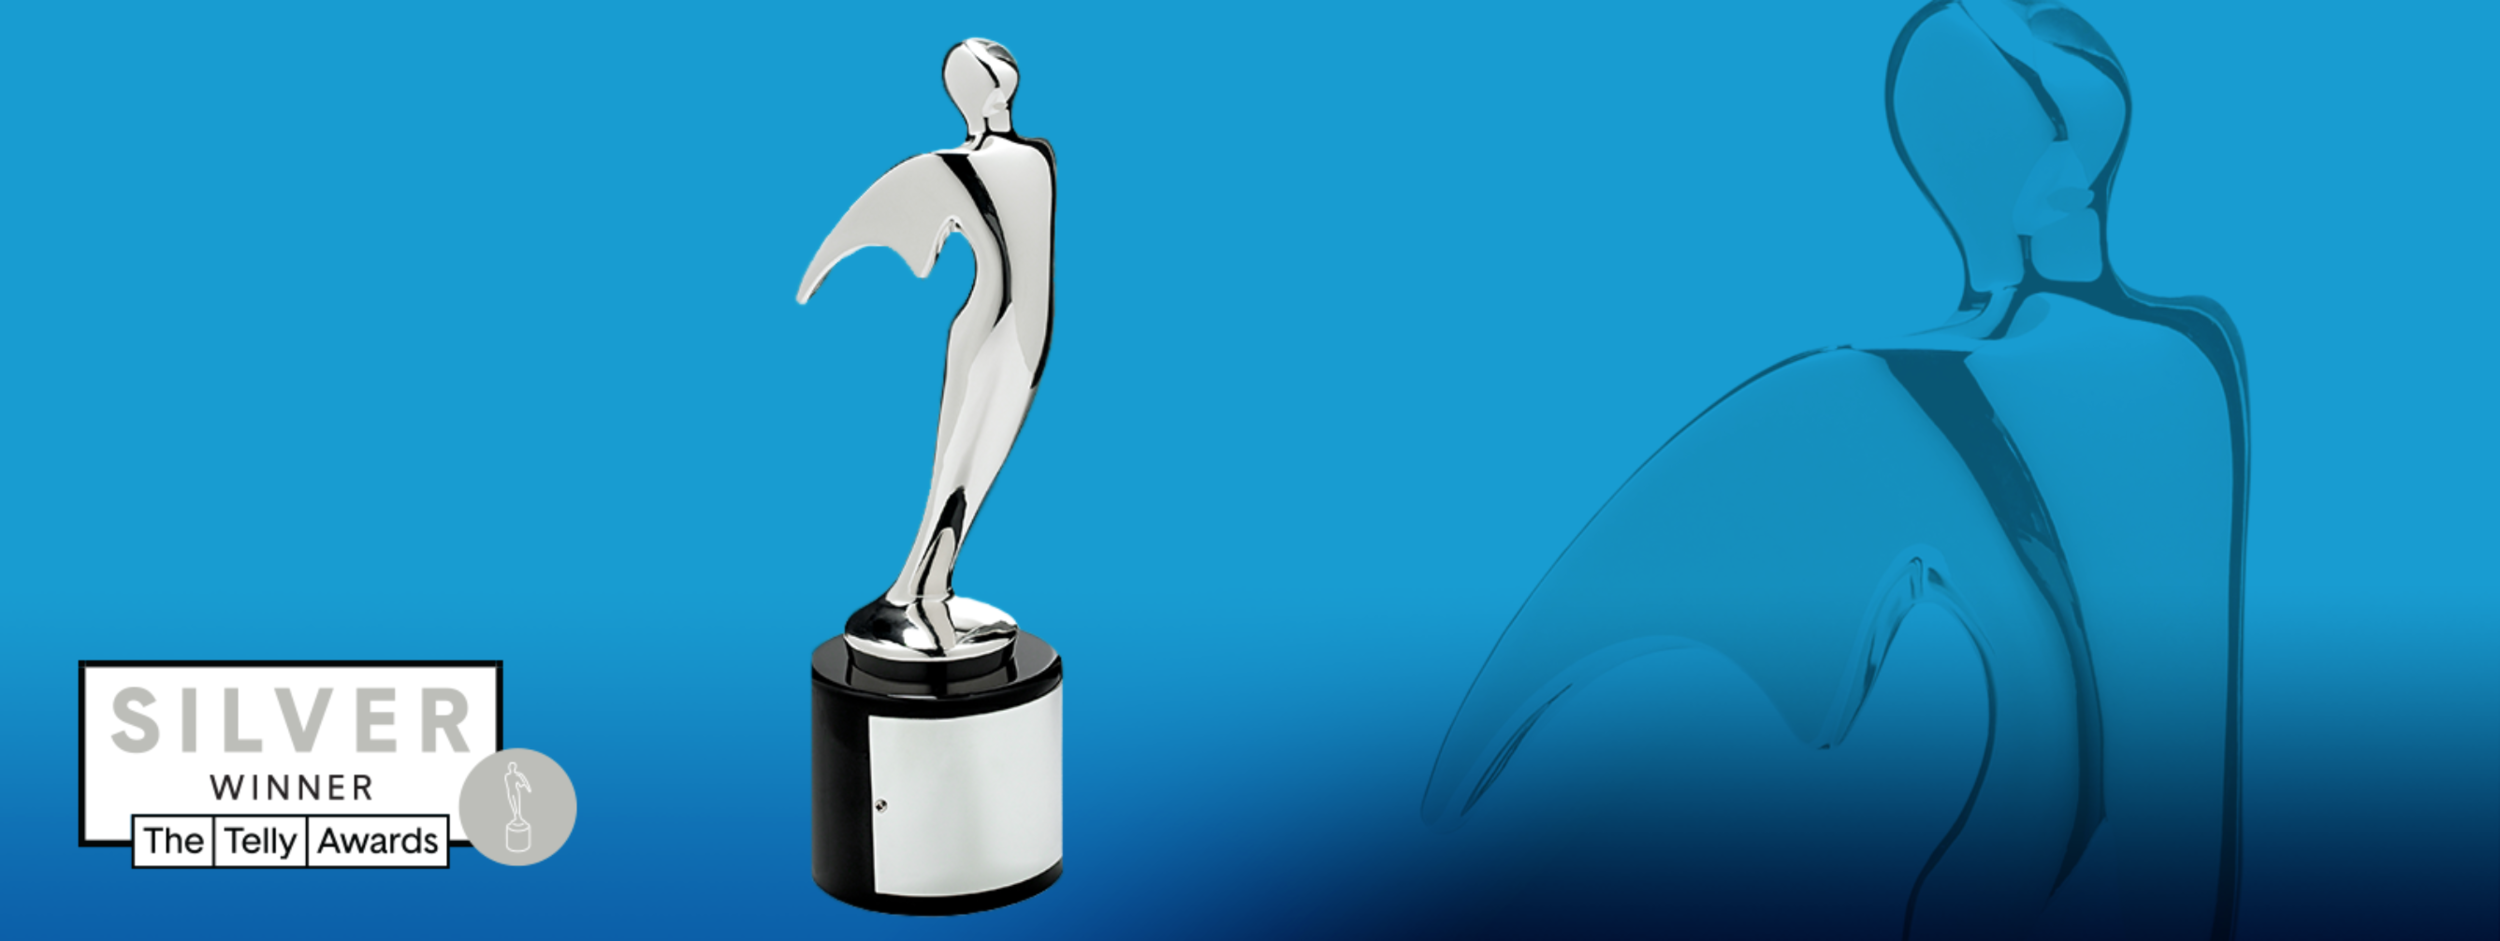 telly-award-silver-winner-40th-anniversary.png